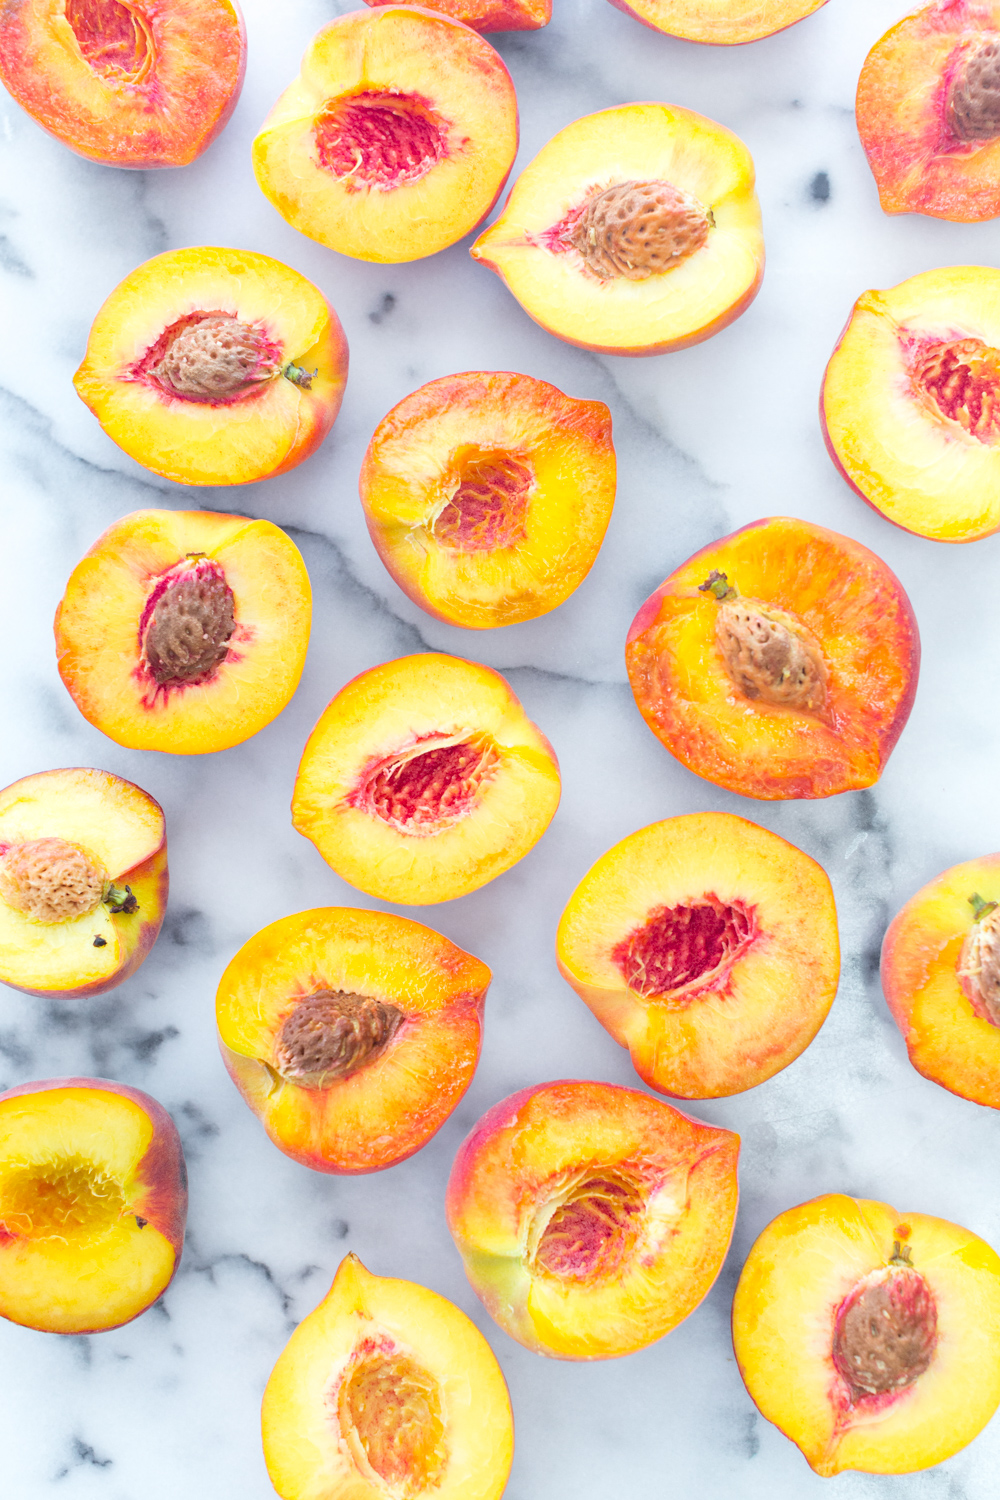 Halved and pitted peaches